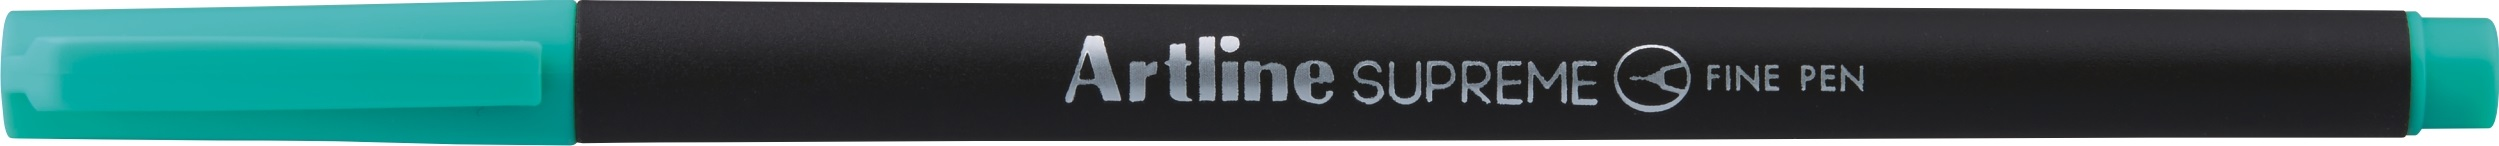 Liner Artline Supreme, varf fetru 0.4mm - turcoaz deschis